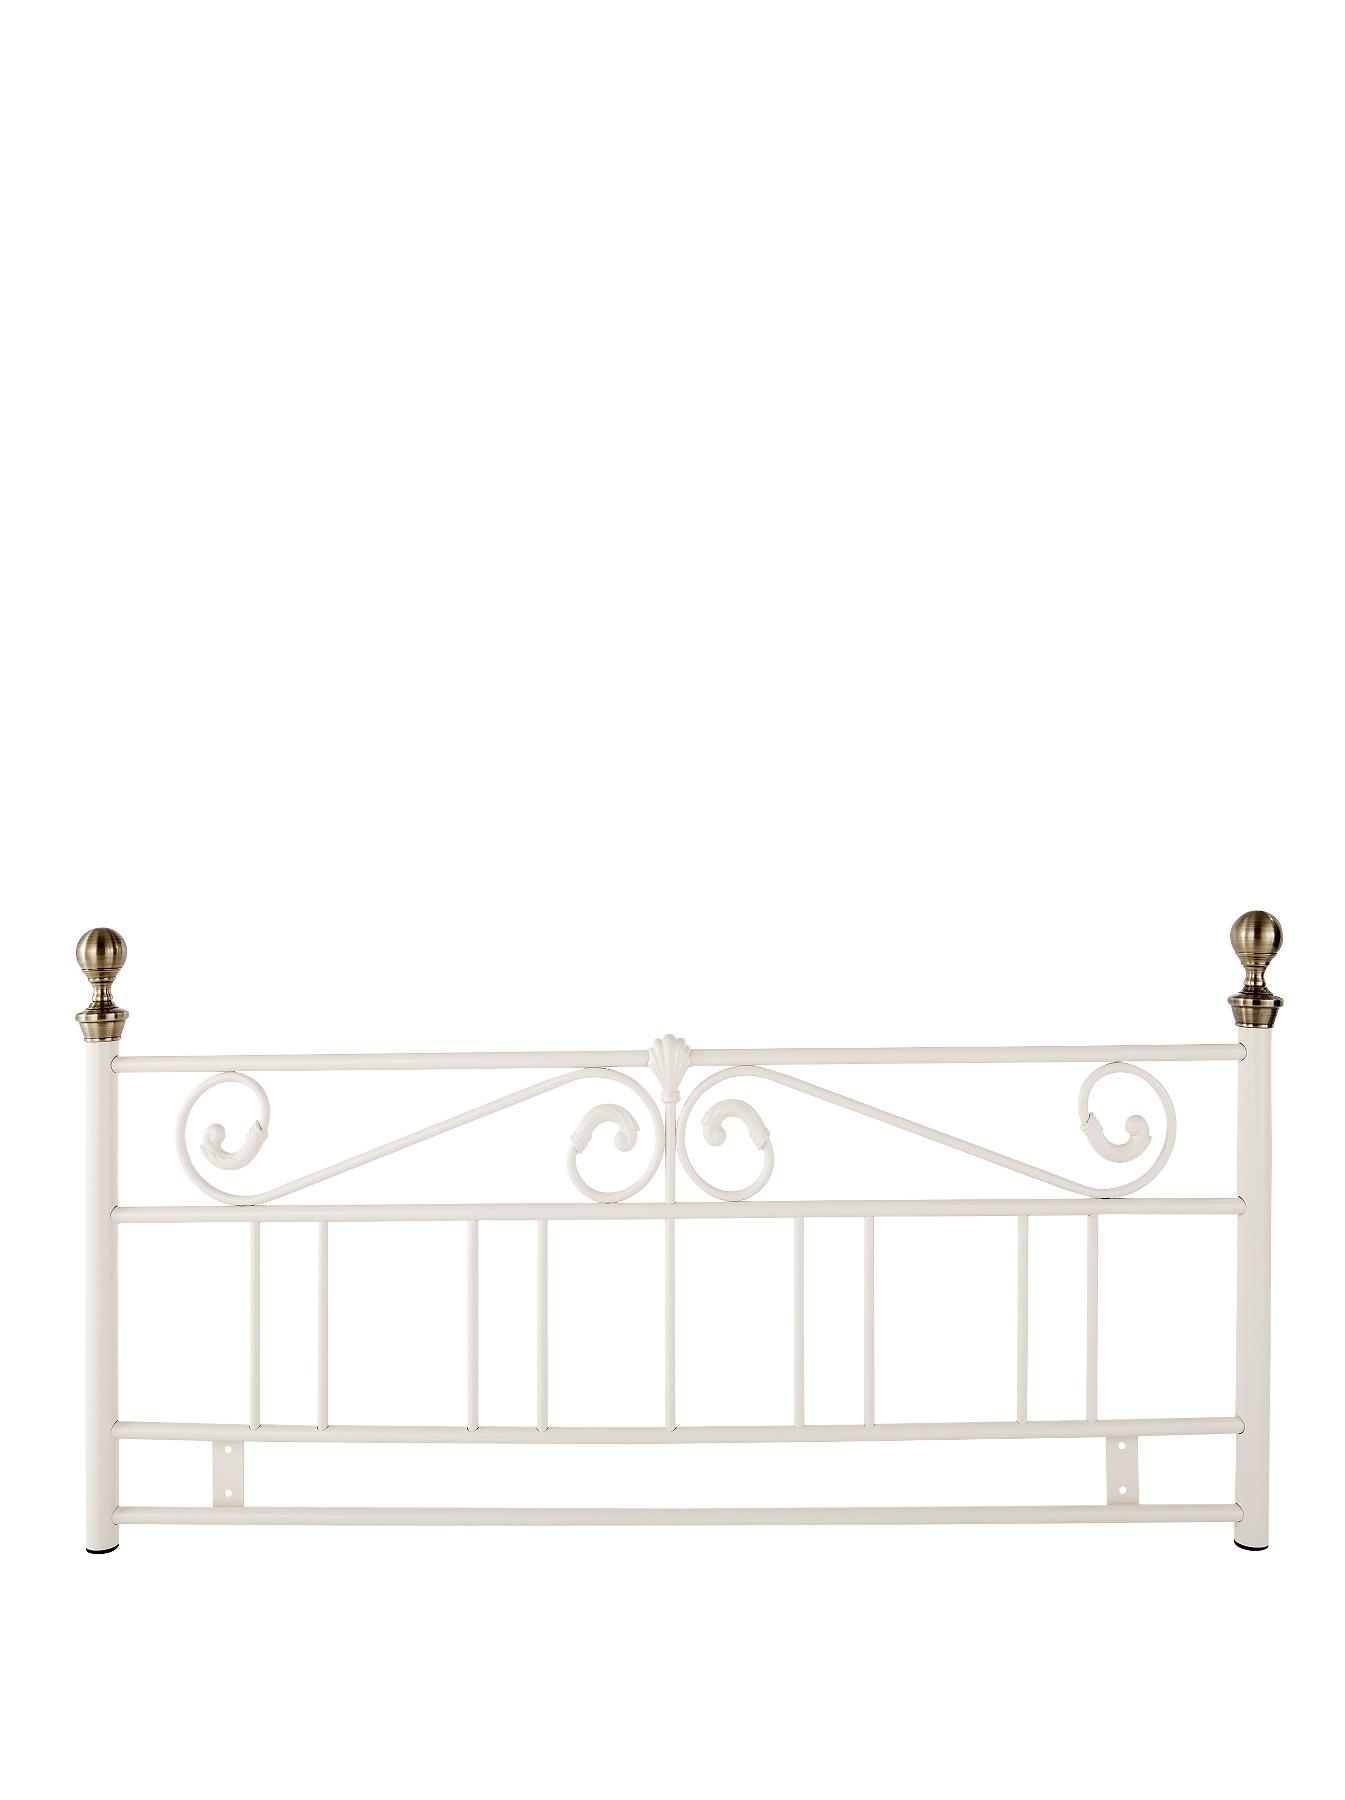 Rosa Headboard - Black, Black,Cream